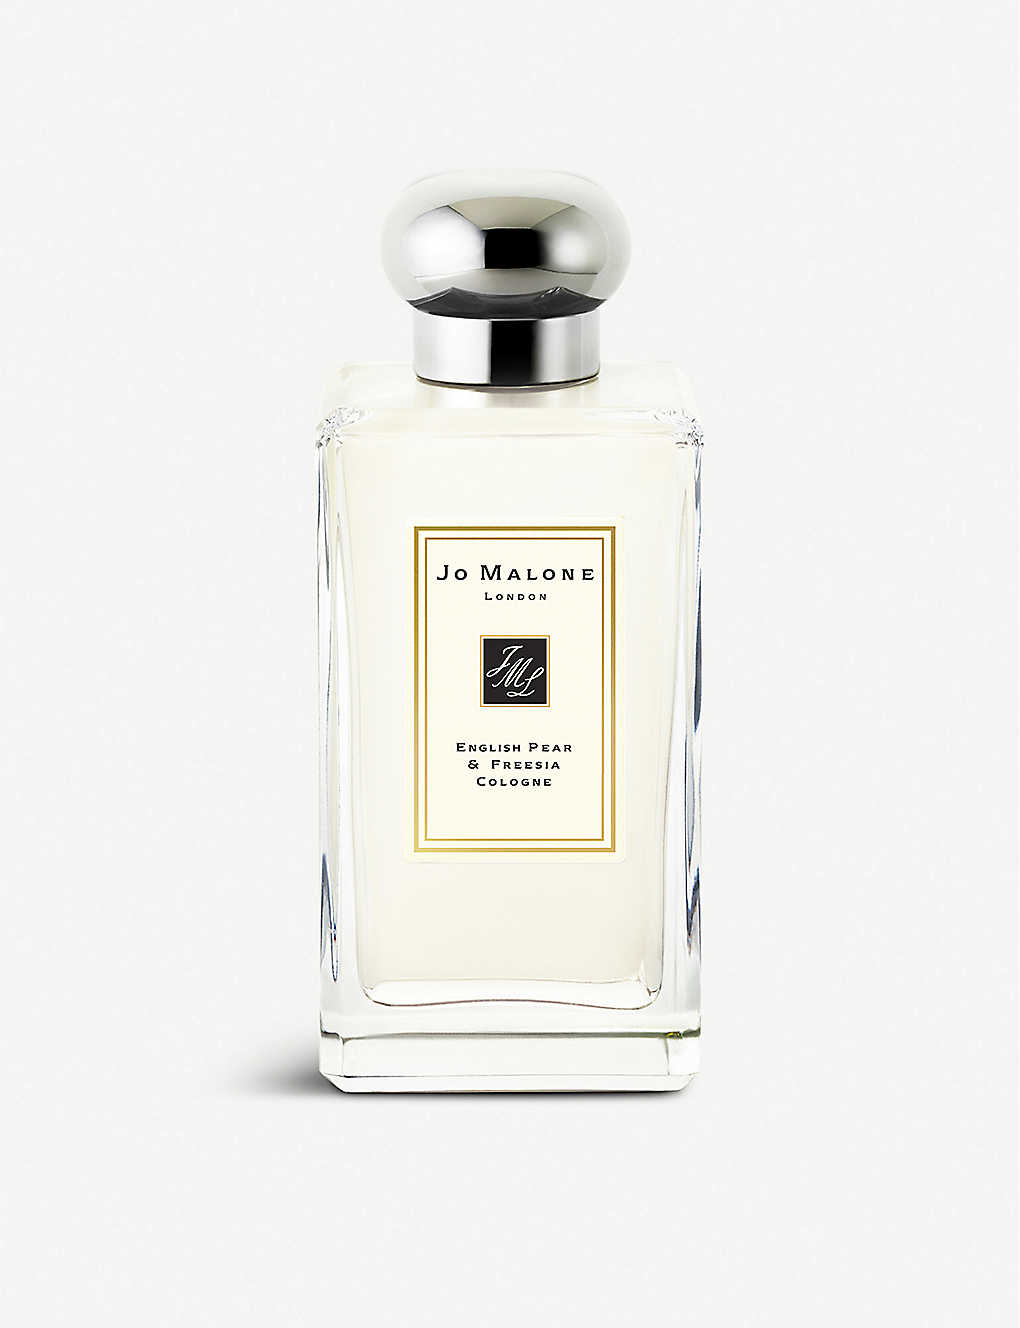 JO MALONE LONDON: English Pear & Freesia cologne 100ml